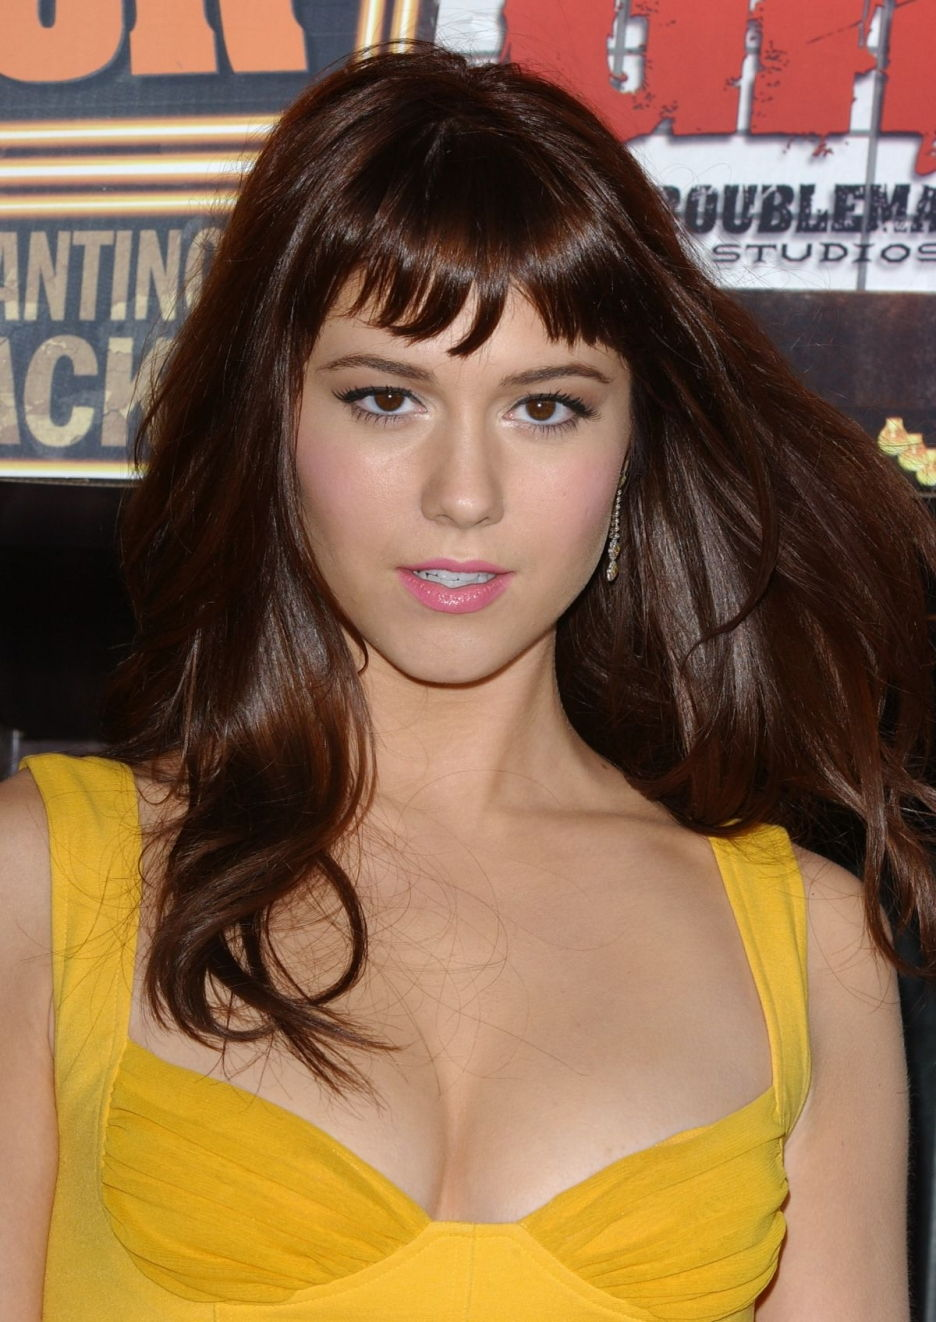 Mary Elizabeth Winstead earned a  million dollar salary - leaving the net worth at 2 million in 2018